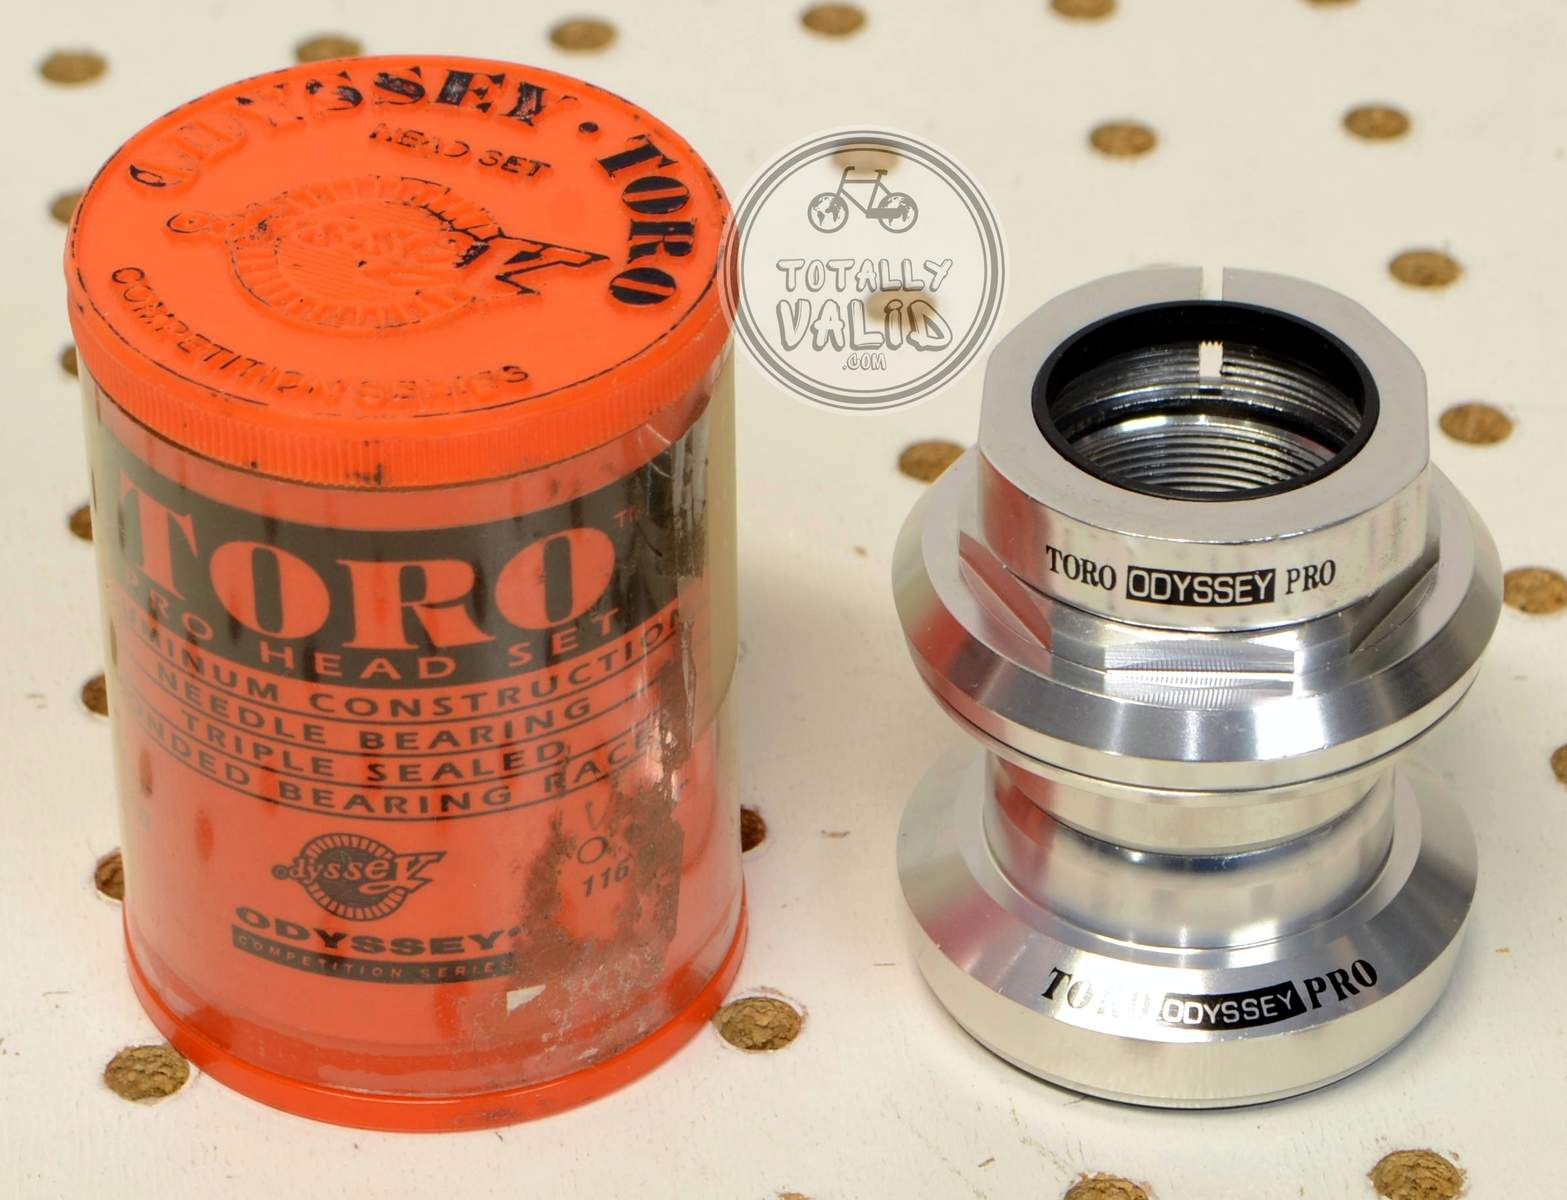 http://uploads.bmxmuseum.com/user-images/17782/odyssey-toro-pro-needle-bearing-headset-os-threaded-vintage-mtb-parts-library.15c3bba21f1.jpg